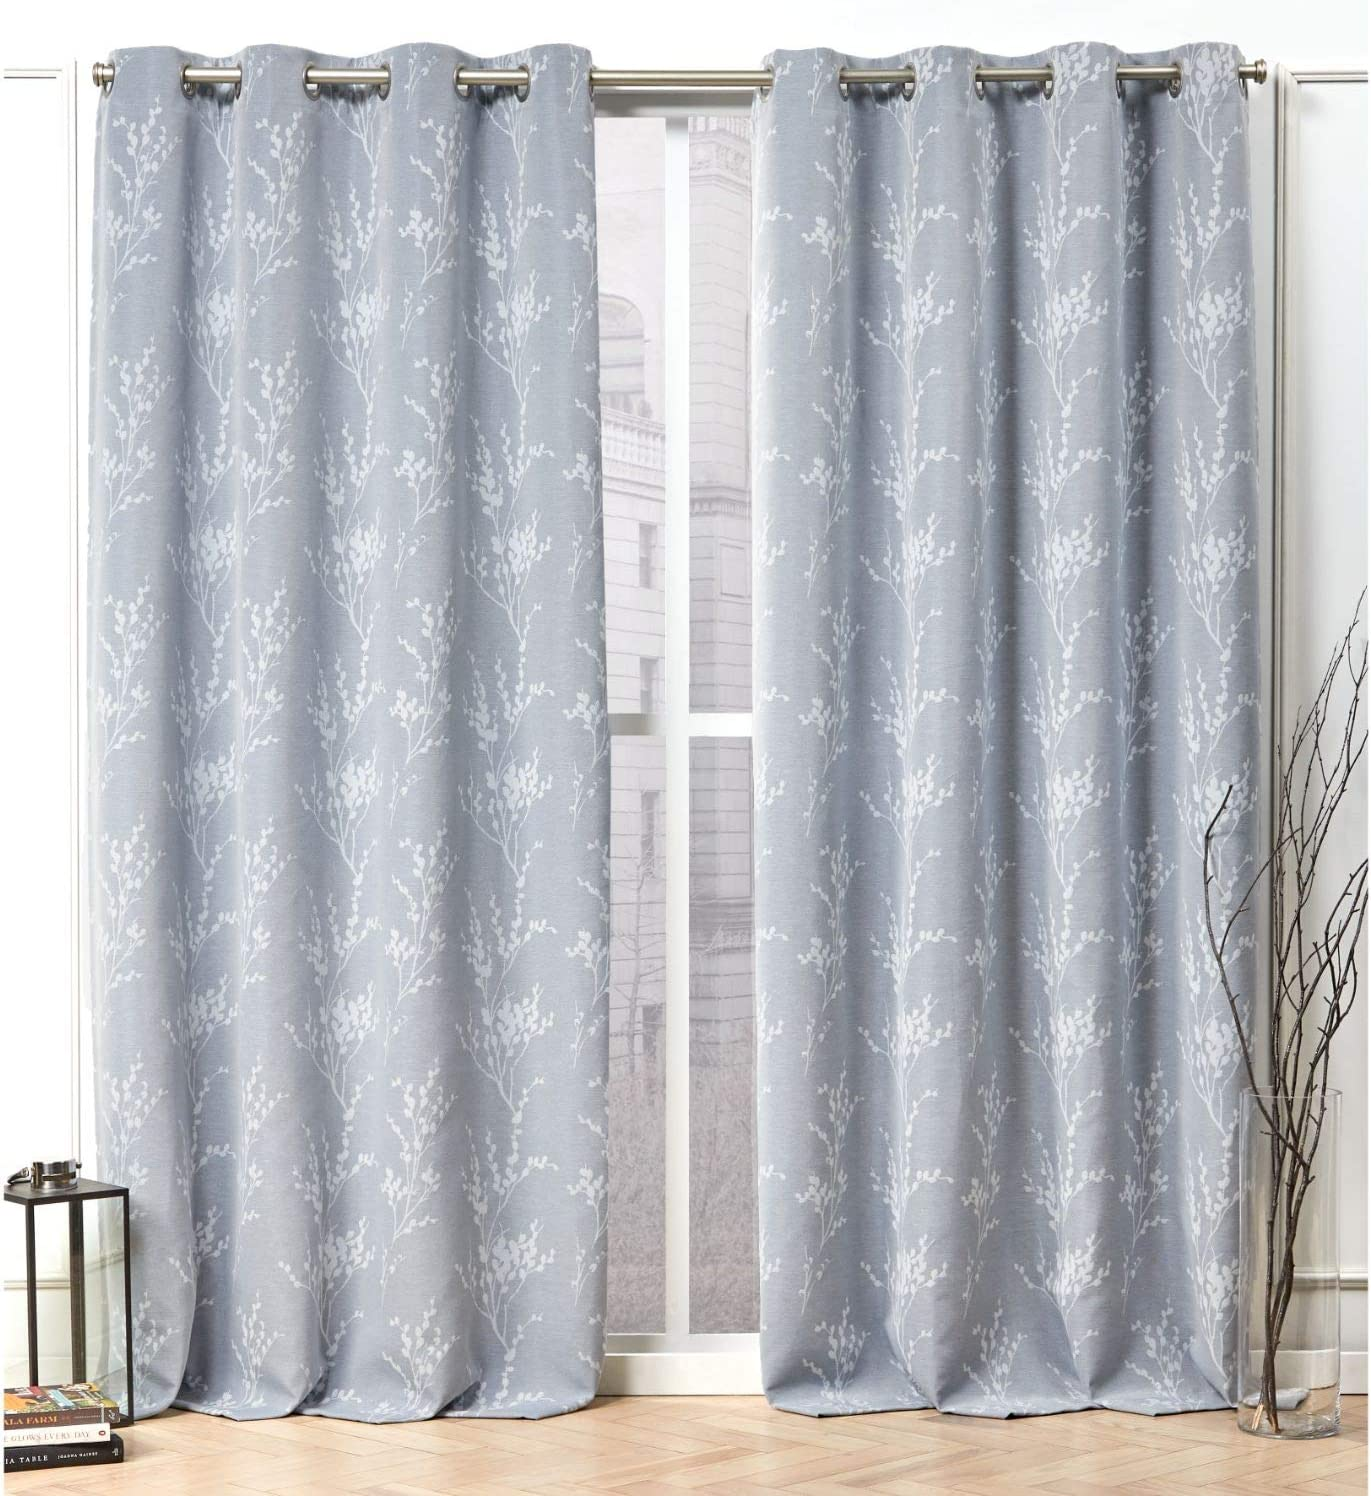 Nicole Miller Turion Curtain Panel, 52x84, Chambray Blue, 2 Panels